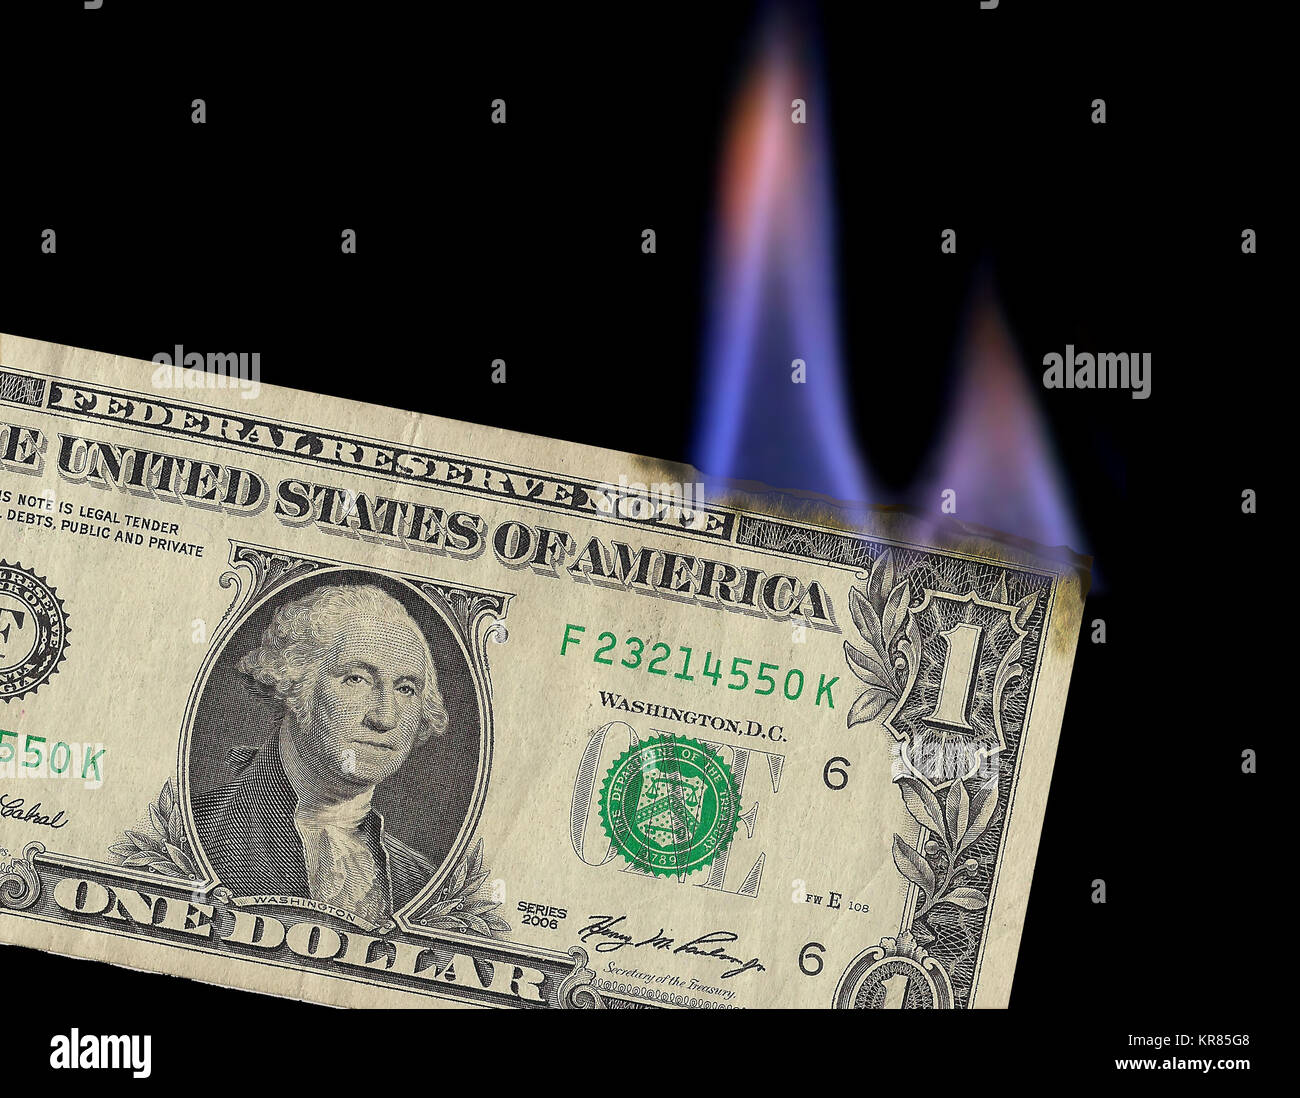 money to burn that is the theme of this flaming us dollar bill in a